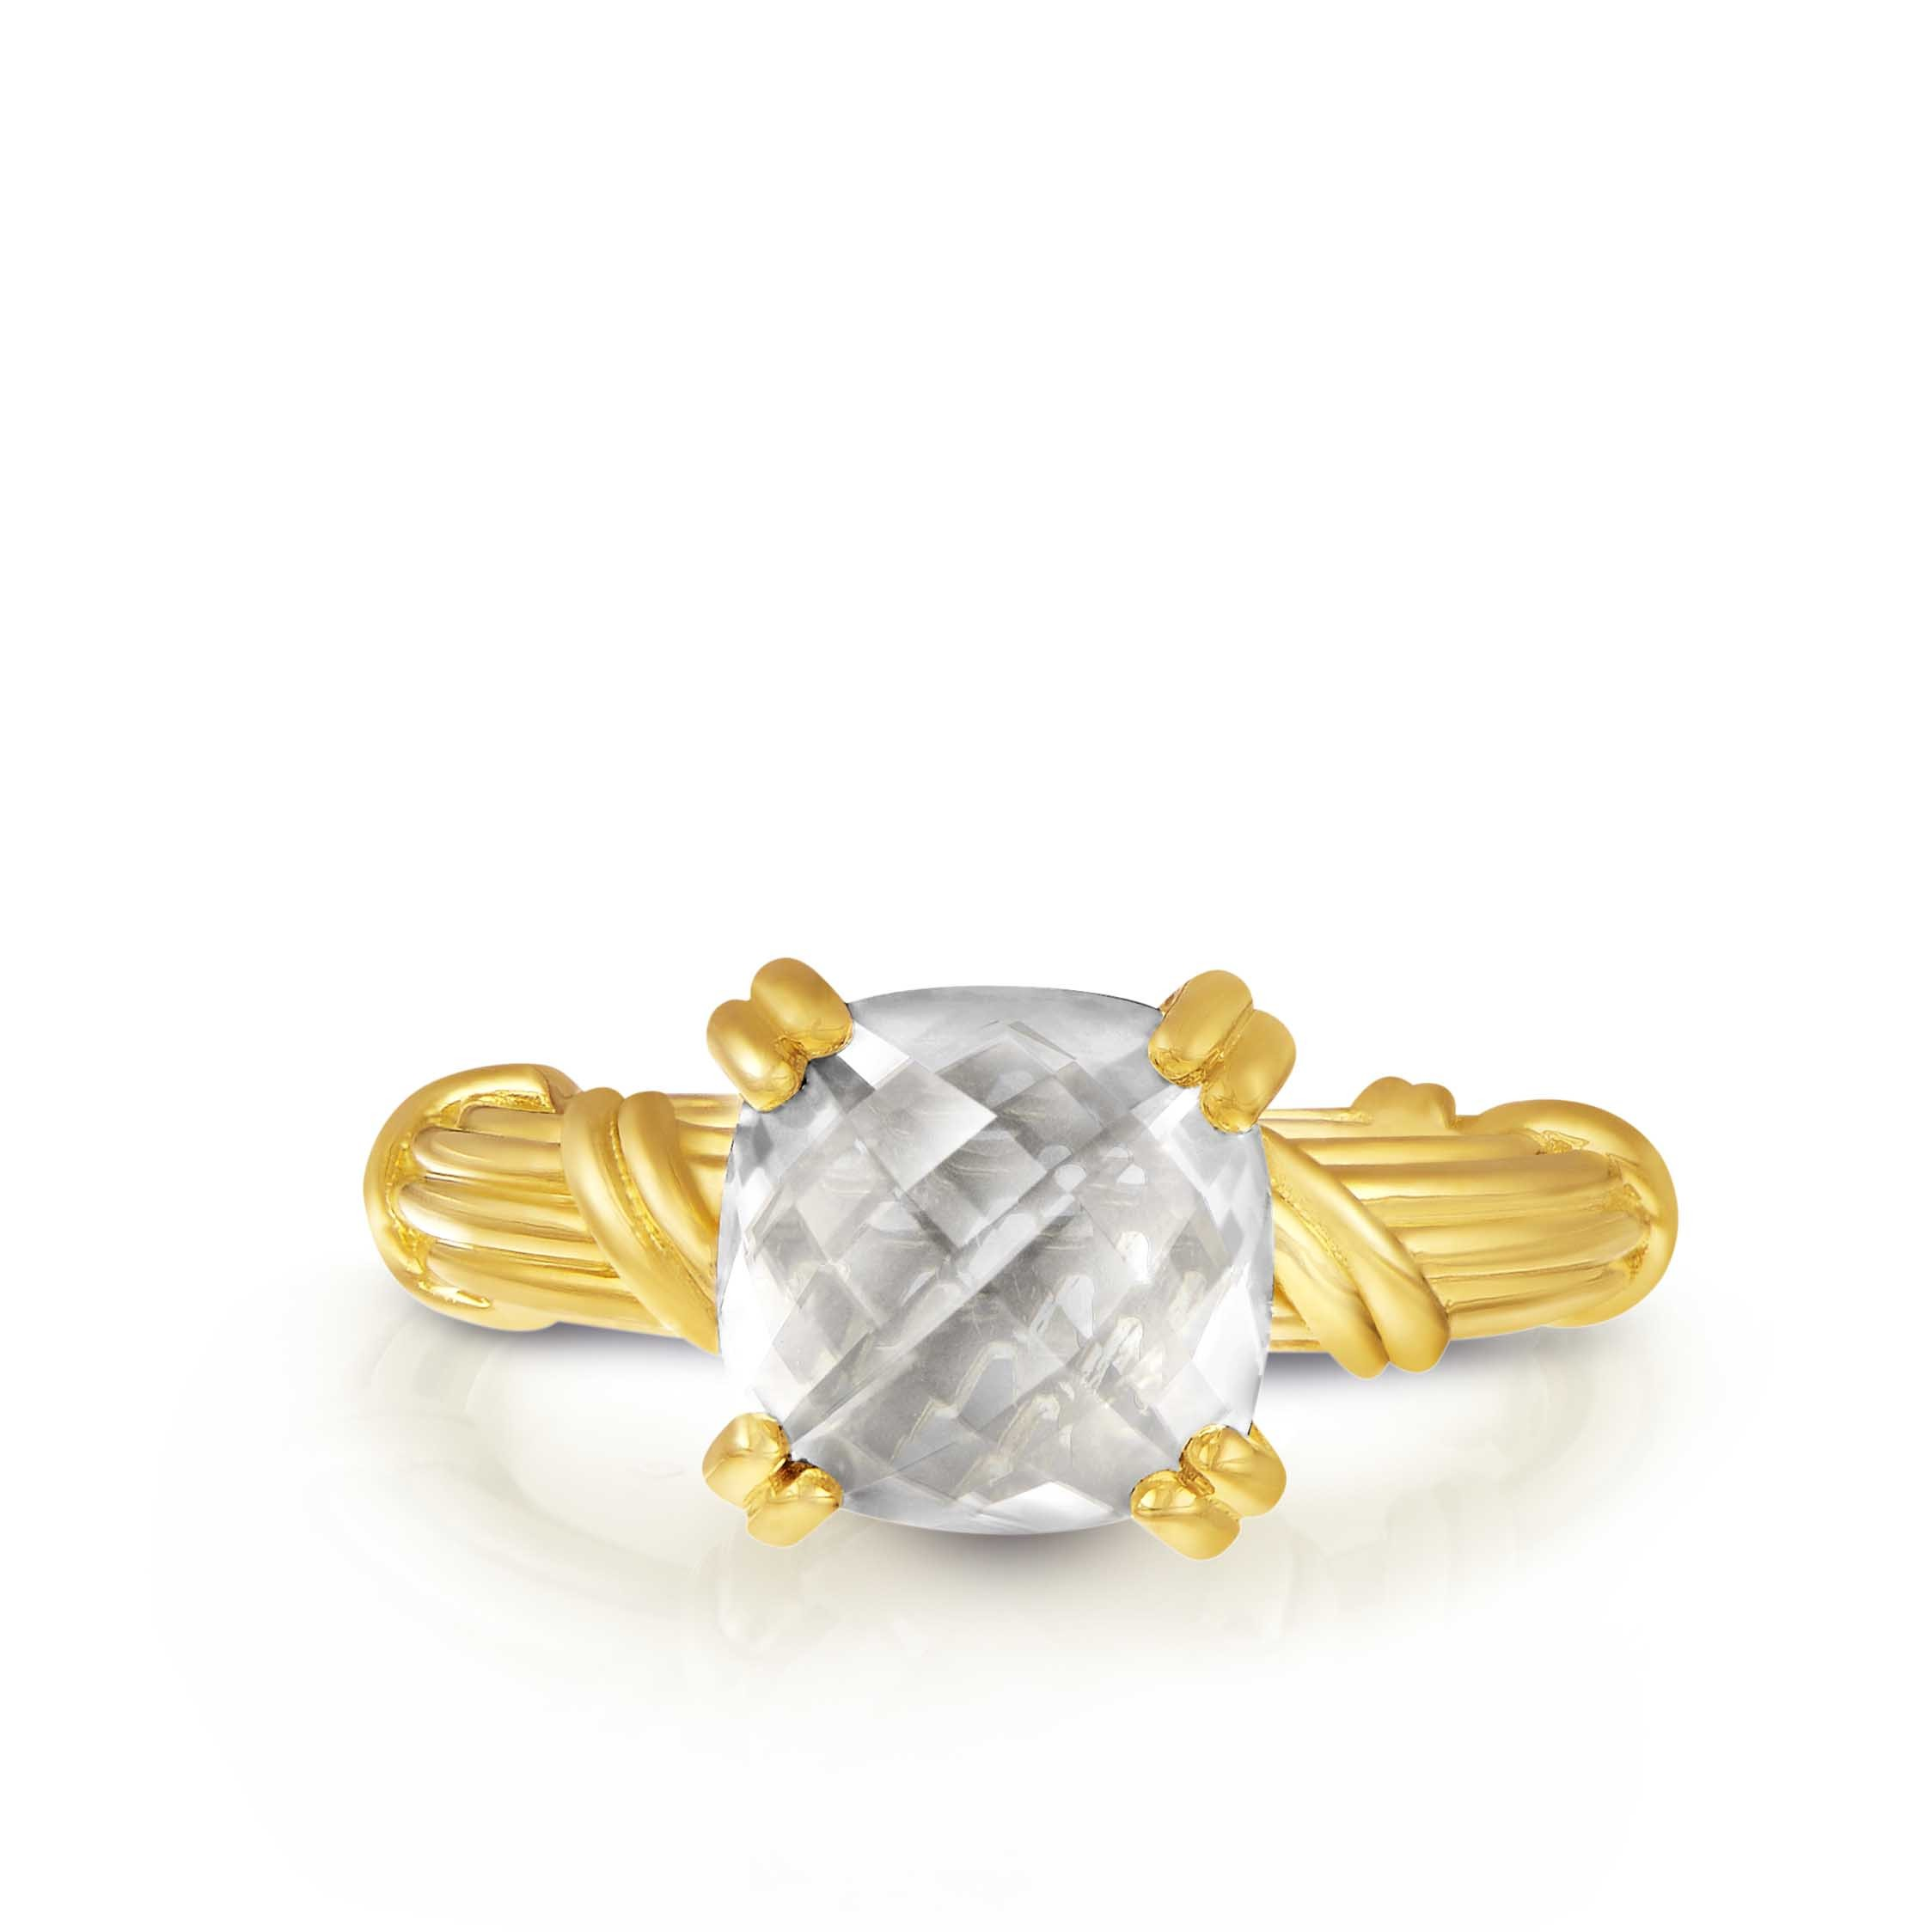 Fantasies Rock Crystal Cocktail Ring in 18K yellow gold